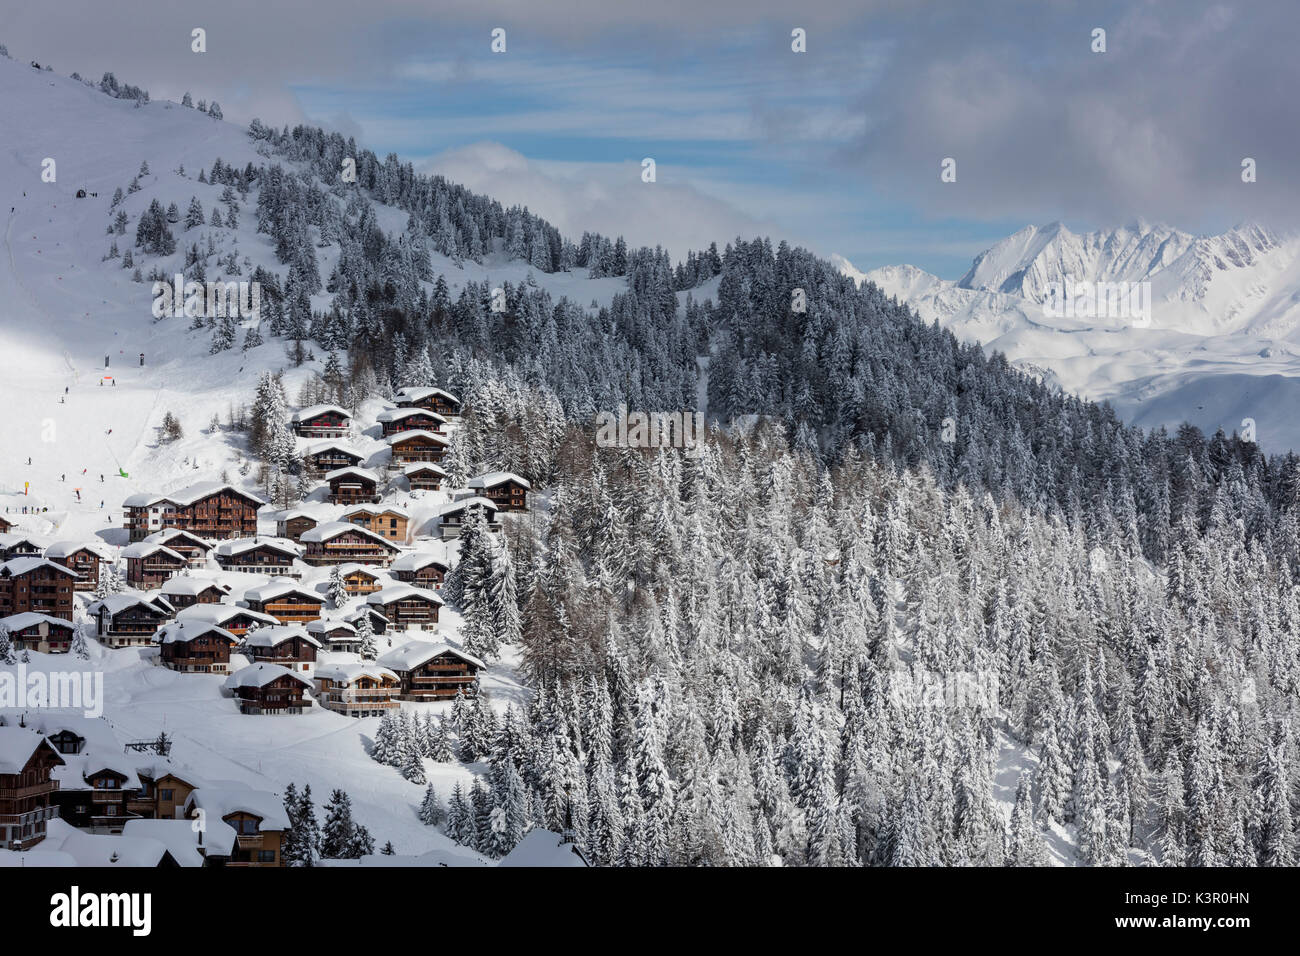 Snowy woods frame the typical alpine village and ski resort Bettmeralp district of Raron canton of Valais Switzerland Europe - Stock Image